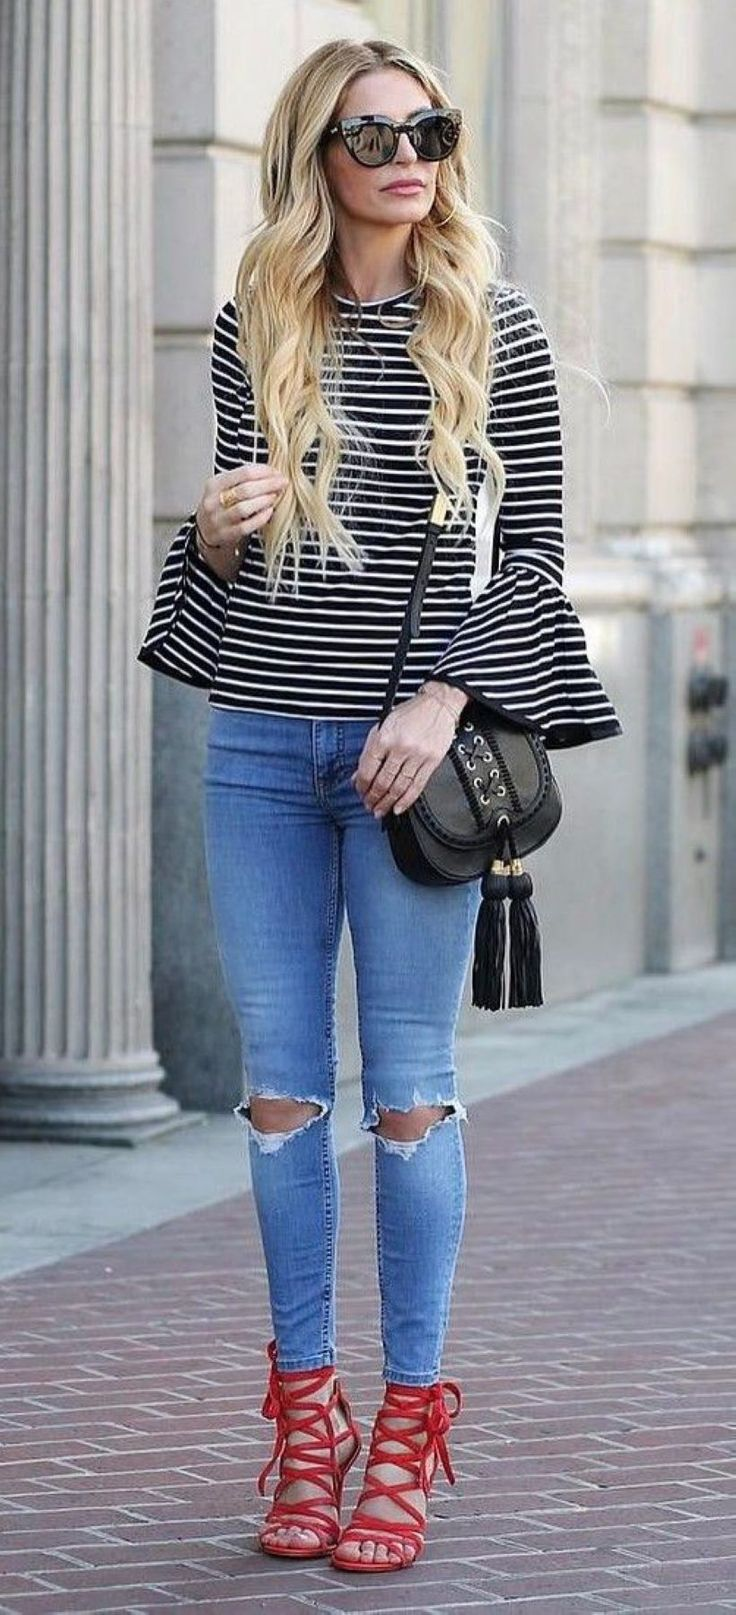 Best 25 Rainy Outfit Ideas On Pinterest Outfits For